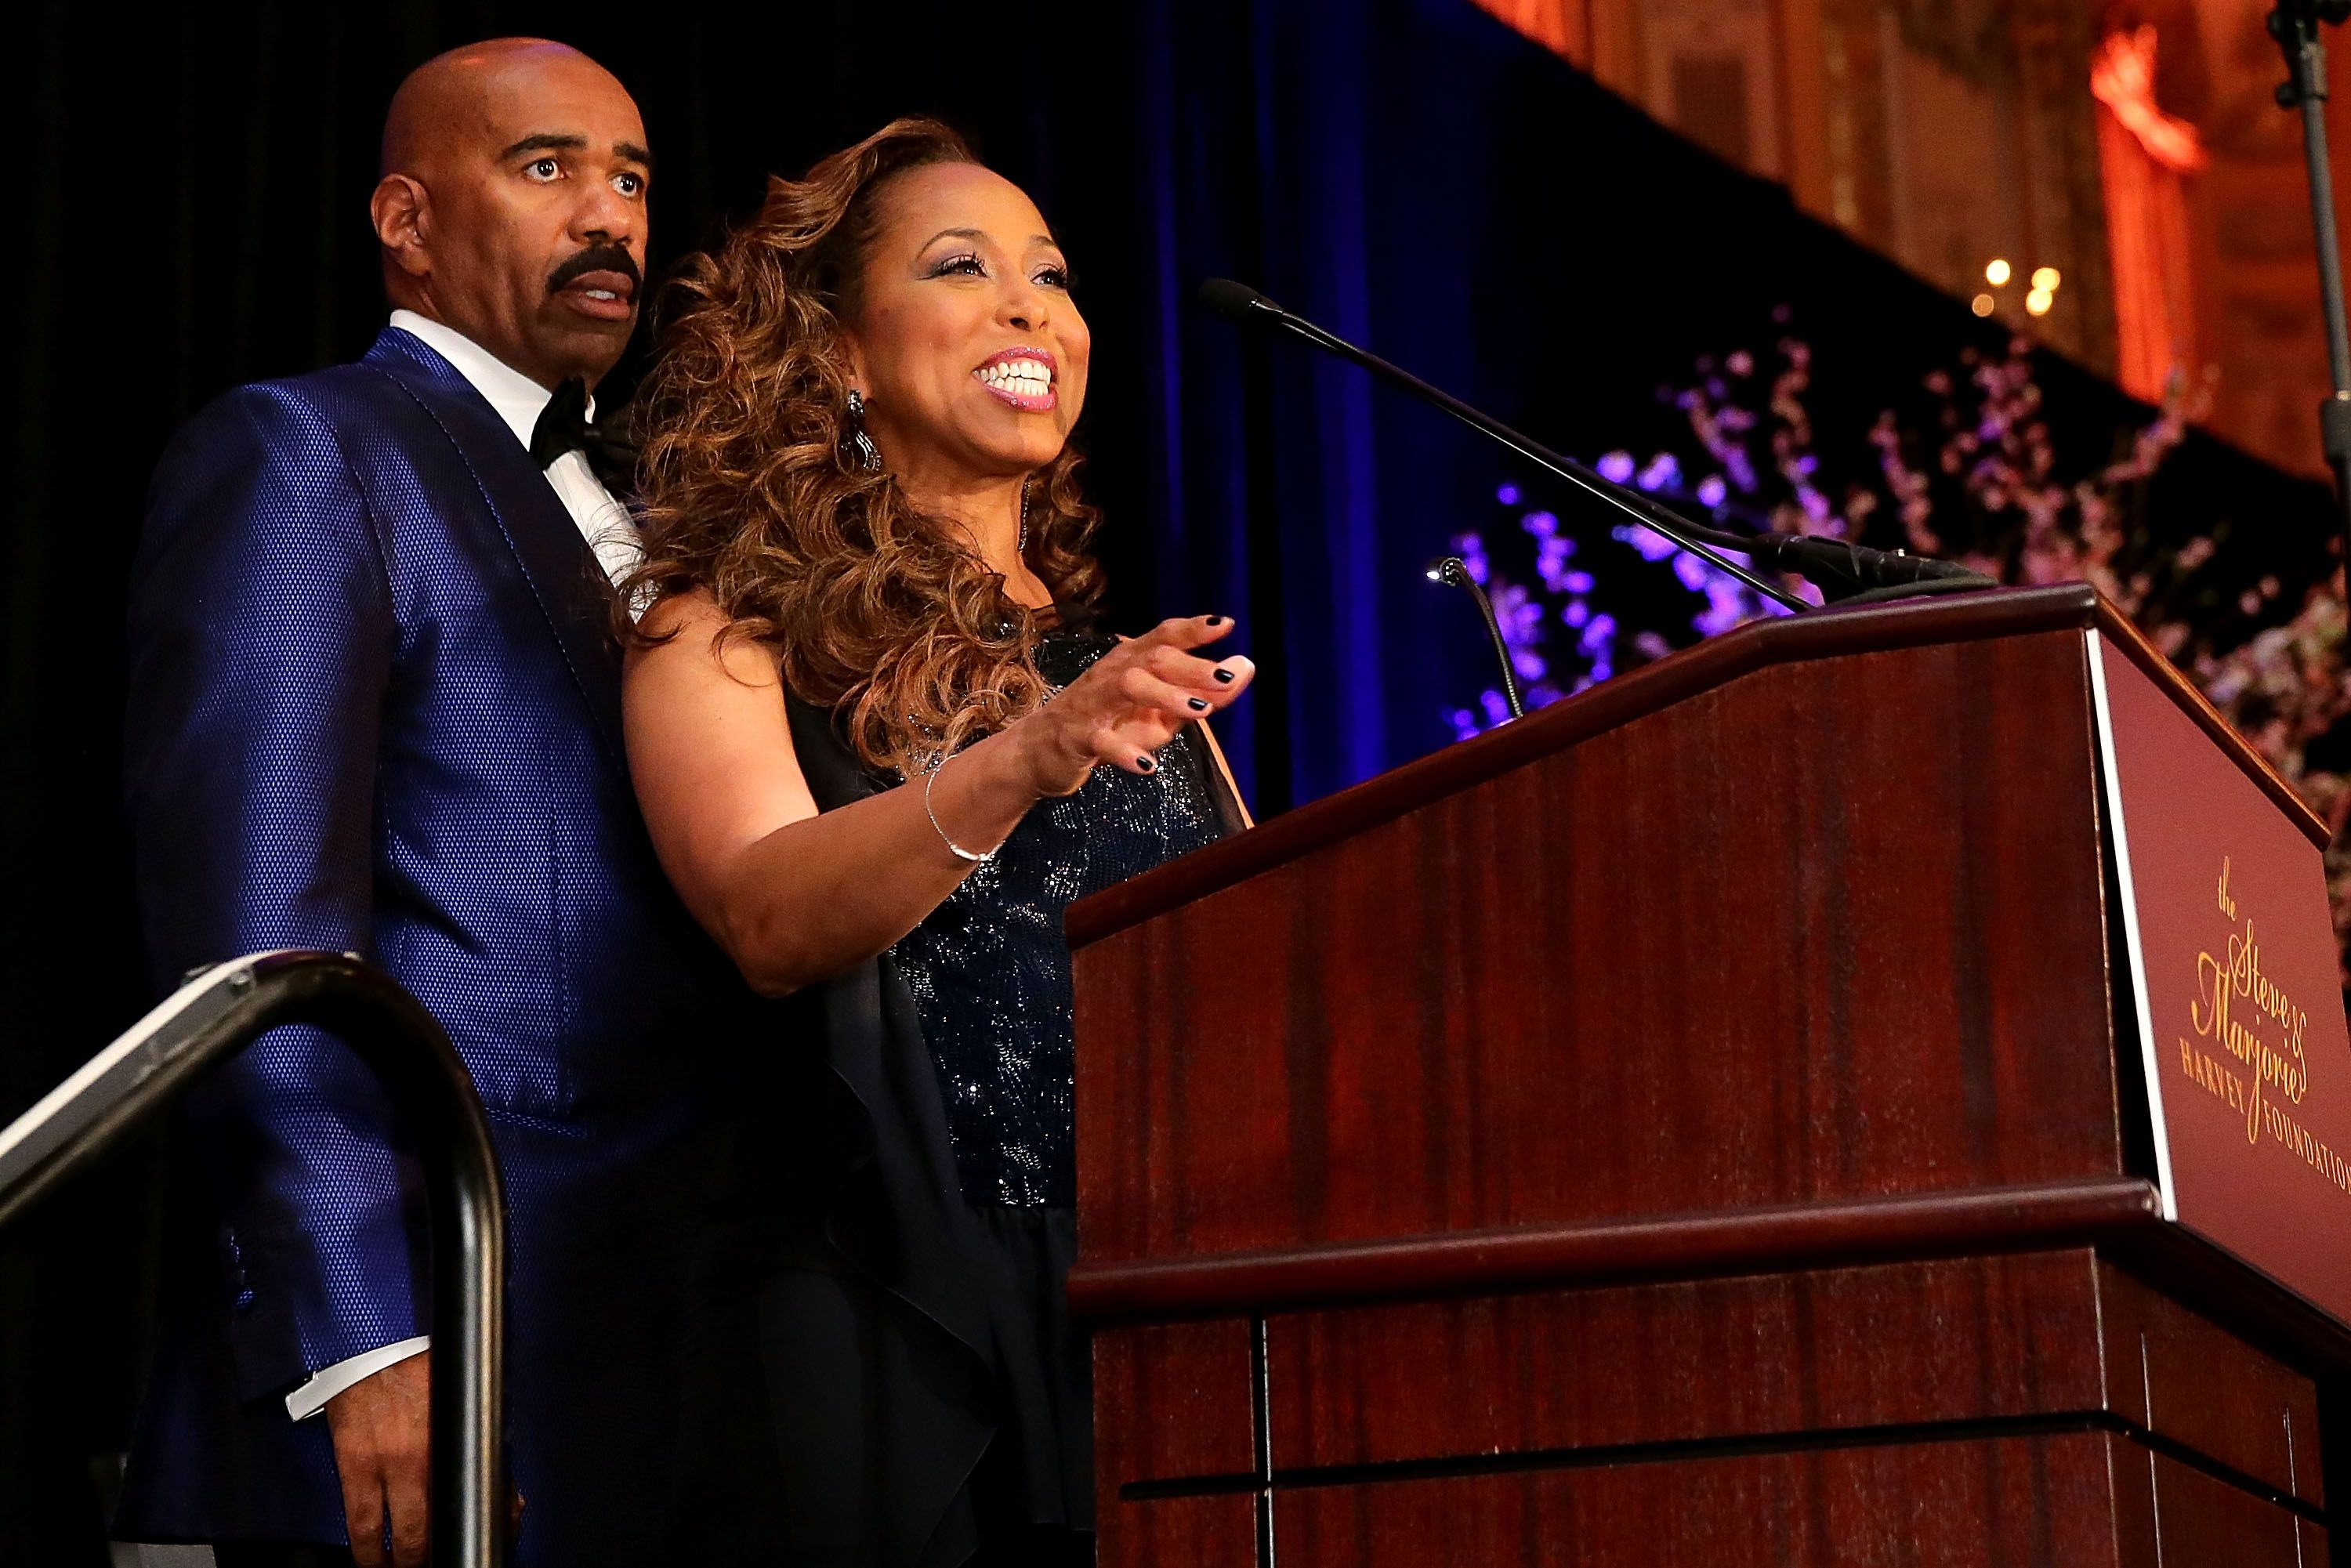 Steve and Marjorie Harvey on stage at the 2014 Steve & Marjorie Harvey Foundation Gala   Source: Getty Images